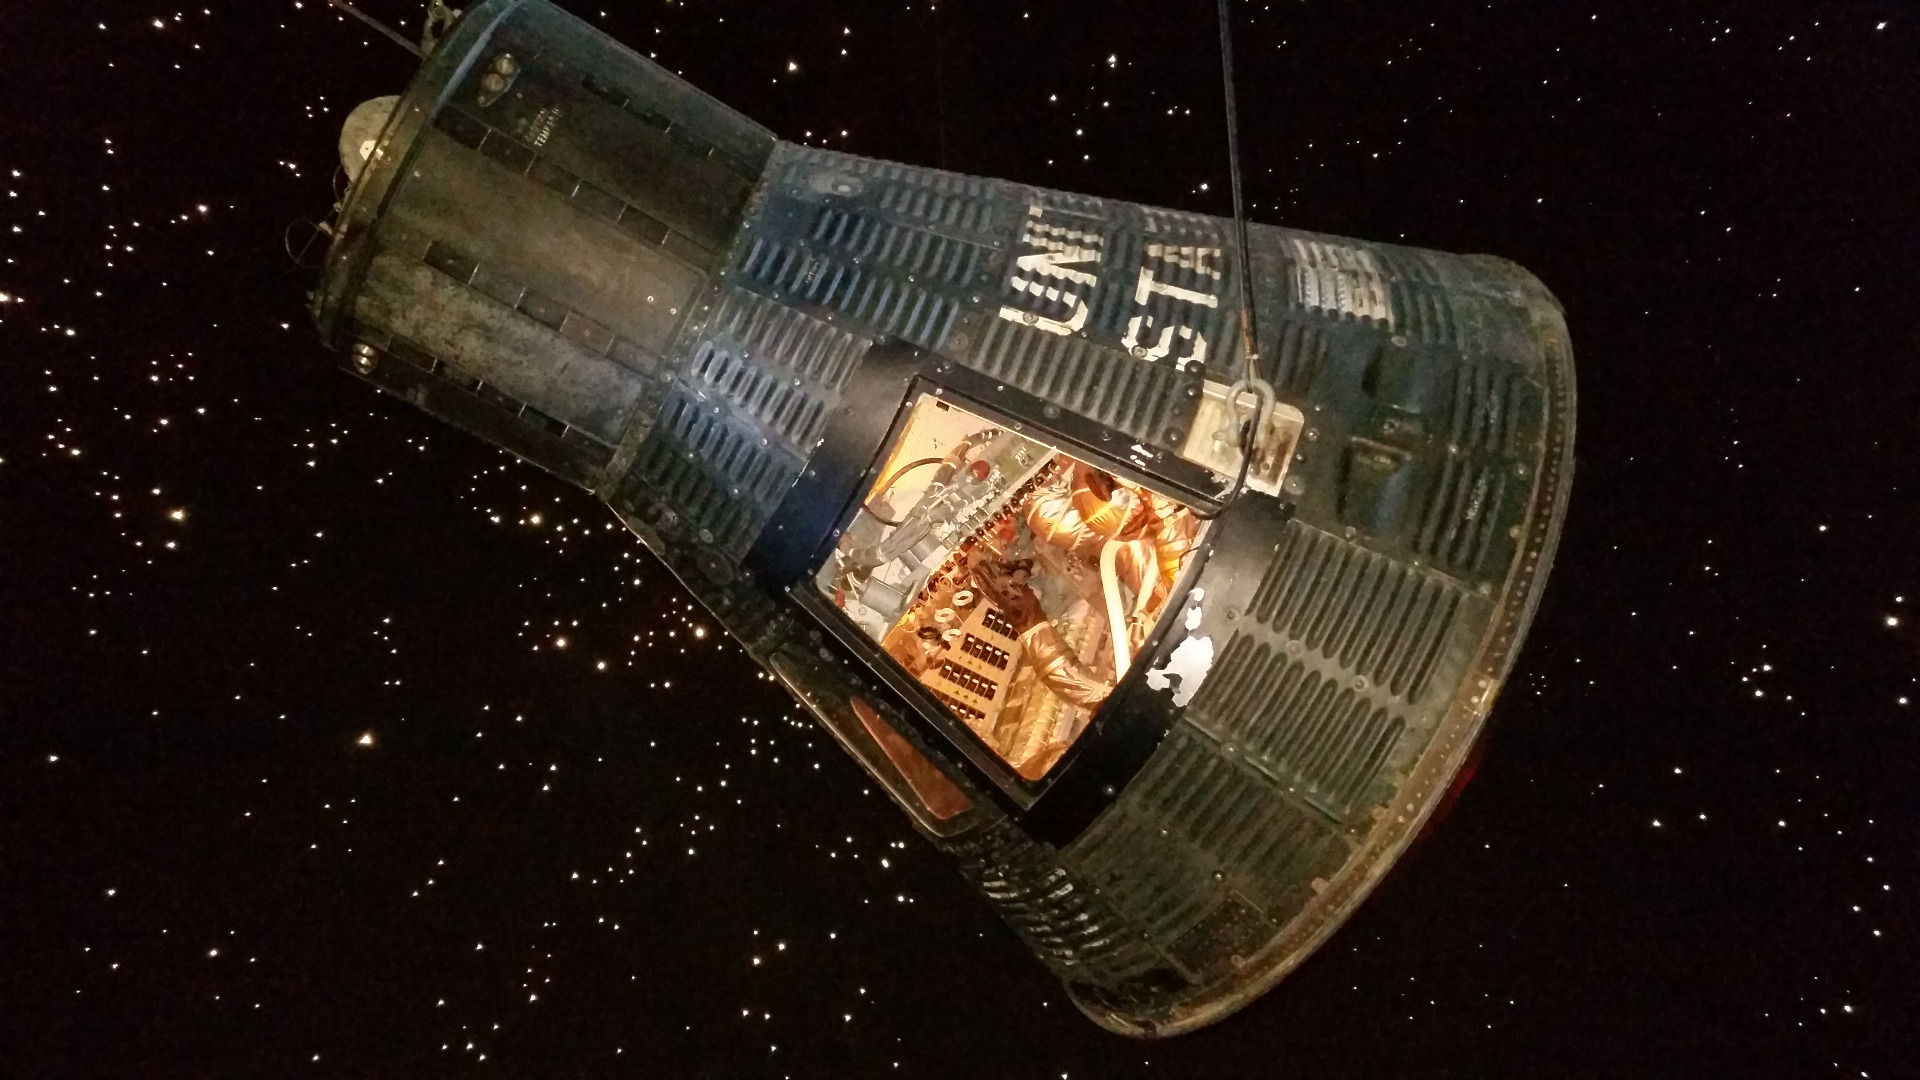 This is the actual Mercury capsule flown by Astronaut Gordon Cooper on May 15-16, 1963. In a triumphant conclusion to Project Mercury, Cooper traveled longer and faster than any American had up until that time.